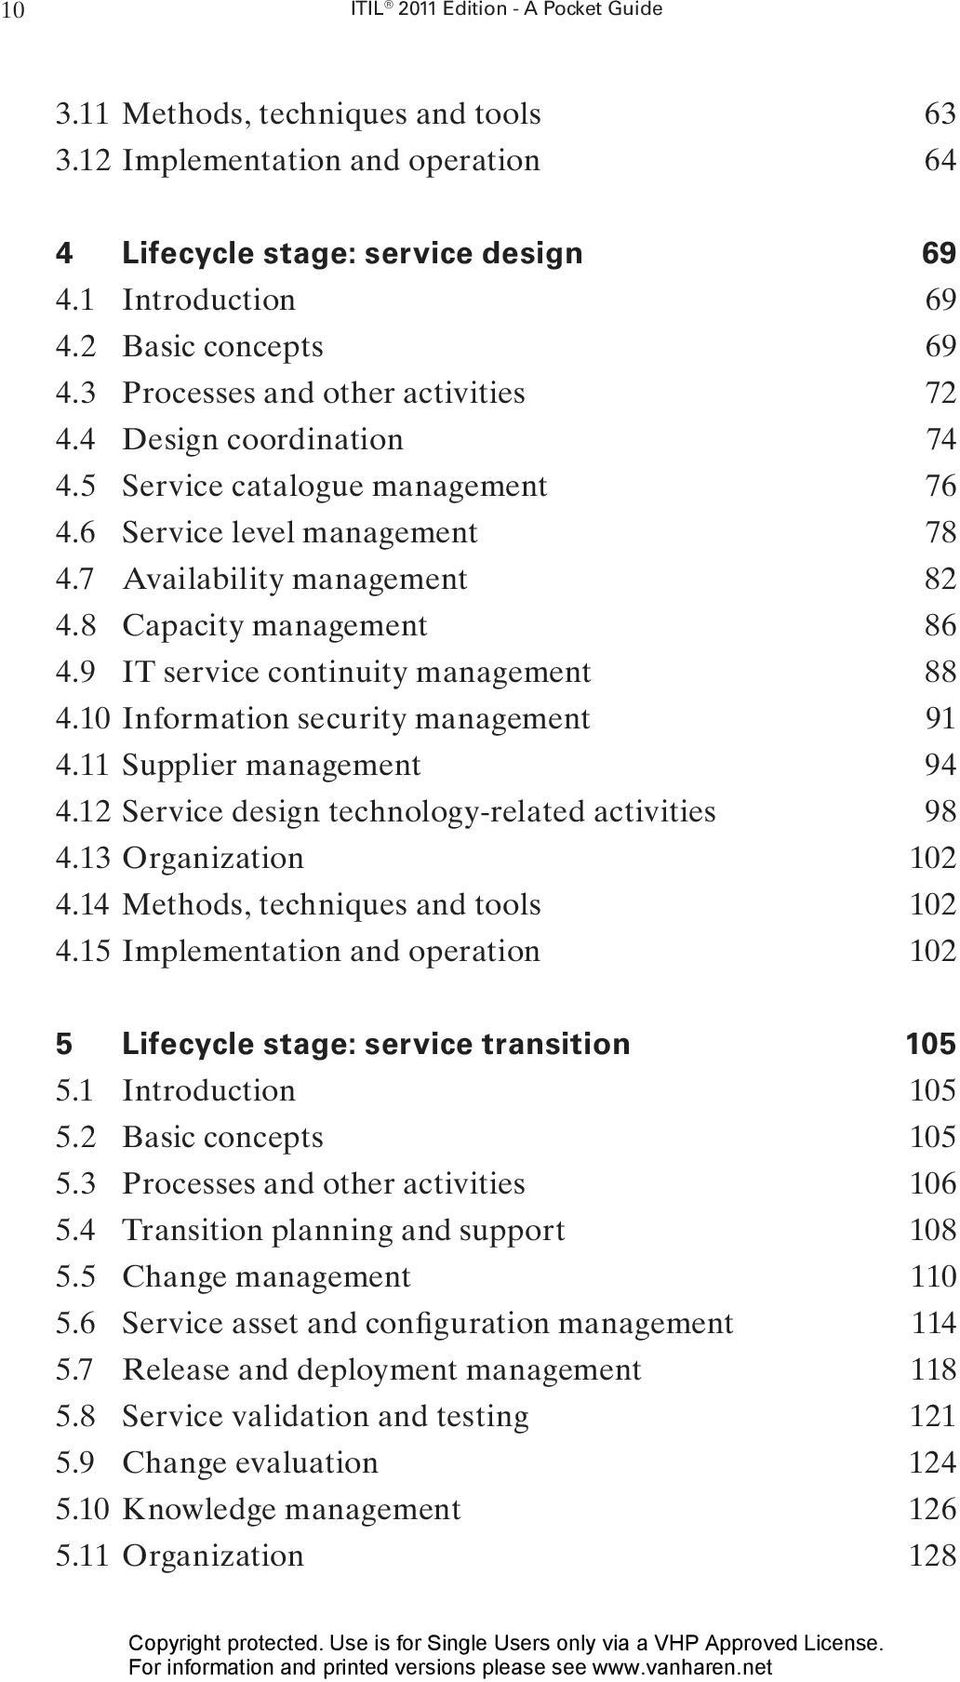 9 IT service continuity management 88 4.10 Information security management 91 4.11 Supplier management 94 4.12 Service design technology-related activities 98 4.13 Organization 102 4.